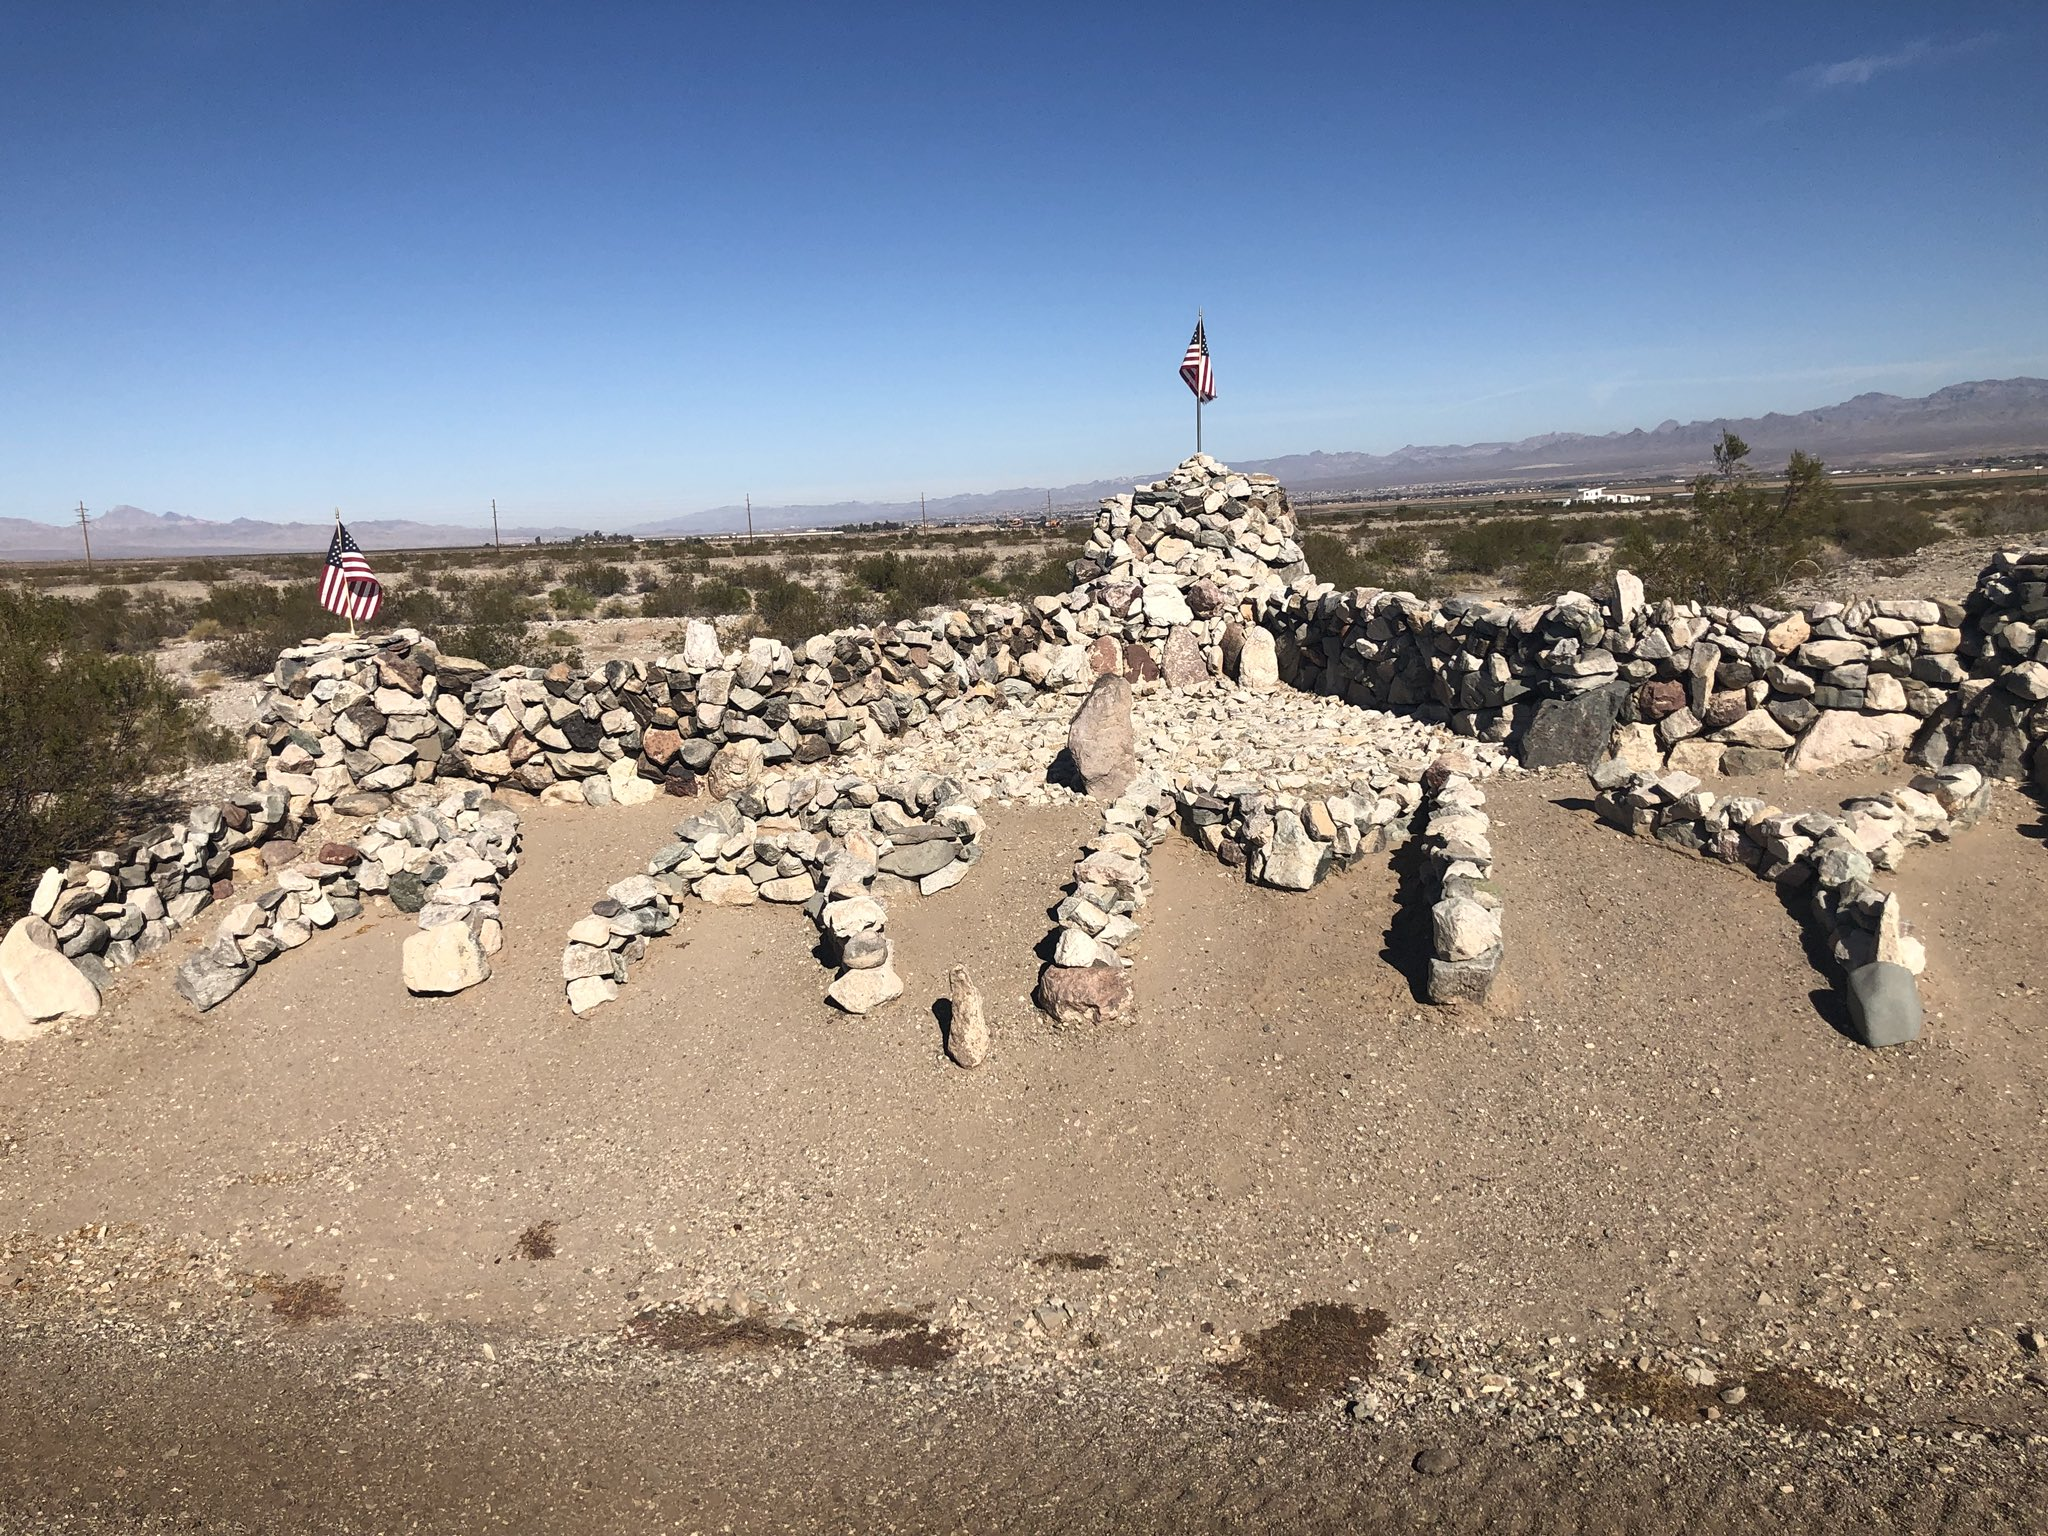 Rock monuments along Route 66 in #NeedlesCA honoring those who have served and those that are serving.  Thank you to all who keep us safe abroad and at home! https://t.co/VL28jSXVY3